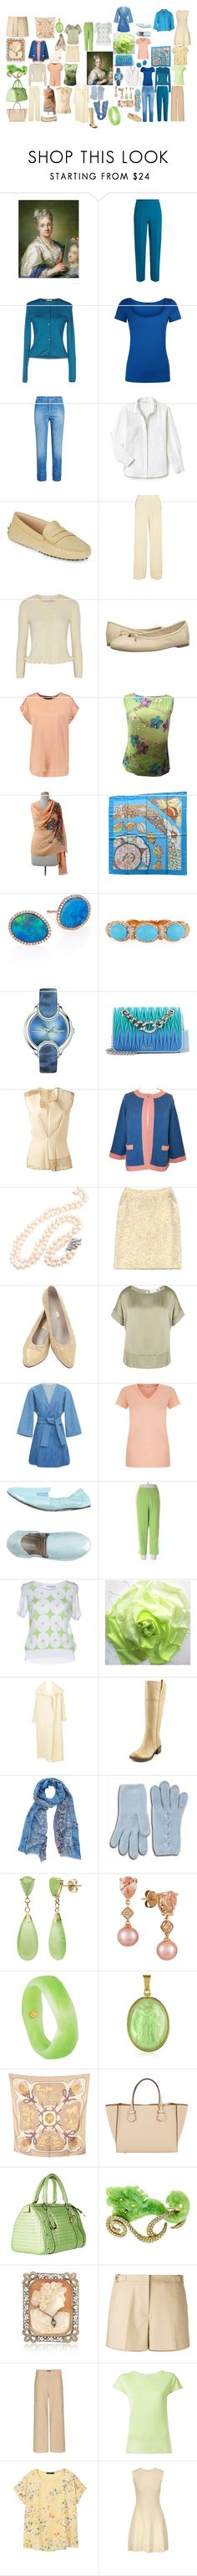 Mysterious Mermaid by jrrenner76 on Polyvore featuring мода, M Missoni, Chanel, Comme des Garçons, Laltramoda, Philosophy di Lorenzo Serafini, P.A.R.O.S.H., Lacoste, By Malene Birger and MANGO